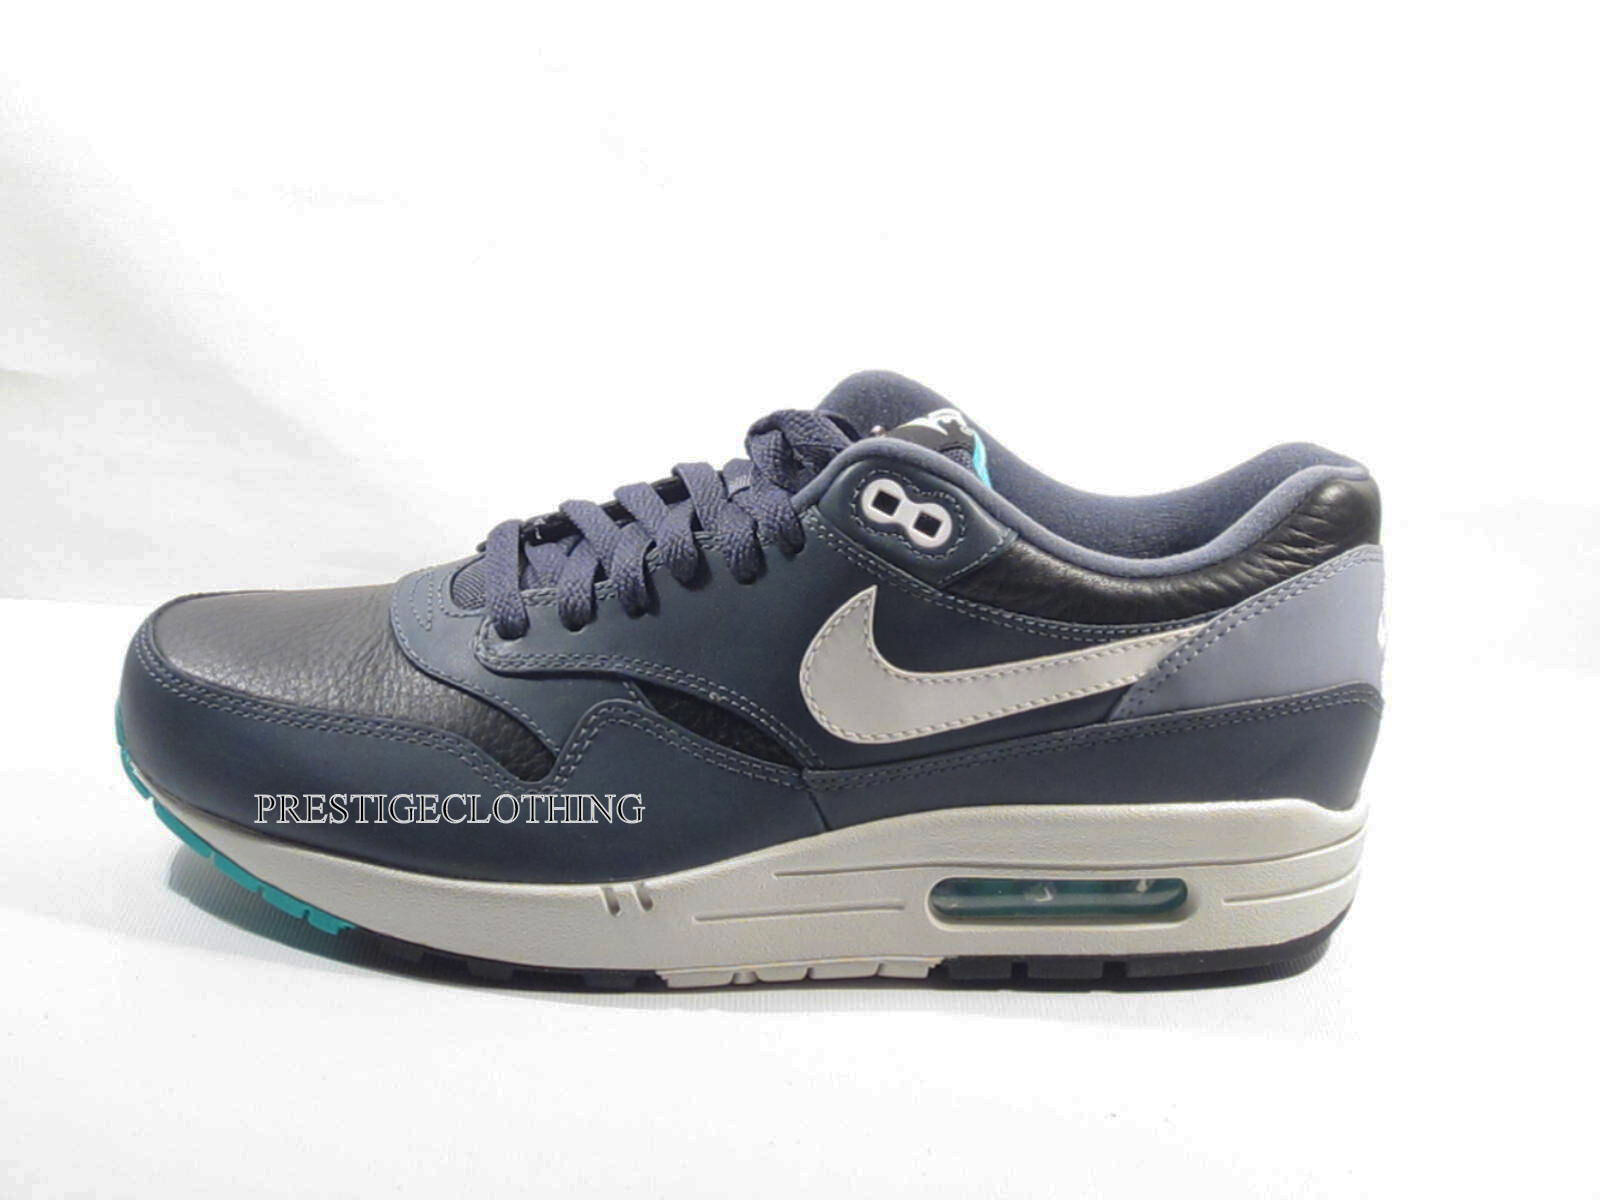 Original Nike Air Max 1 Leather Noir  Gris Whie Rare Trainers 6544666002